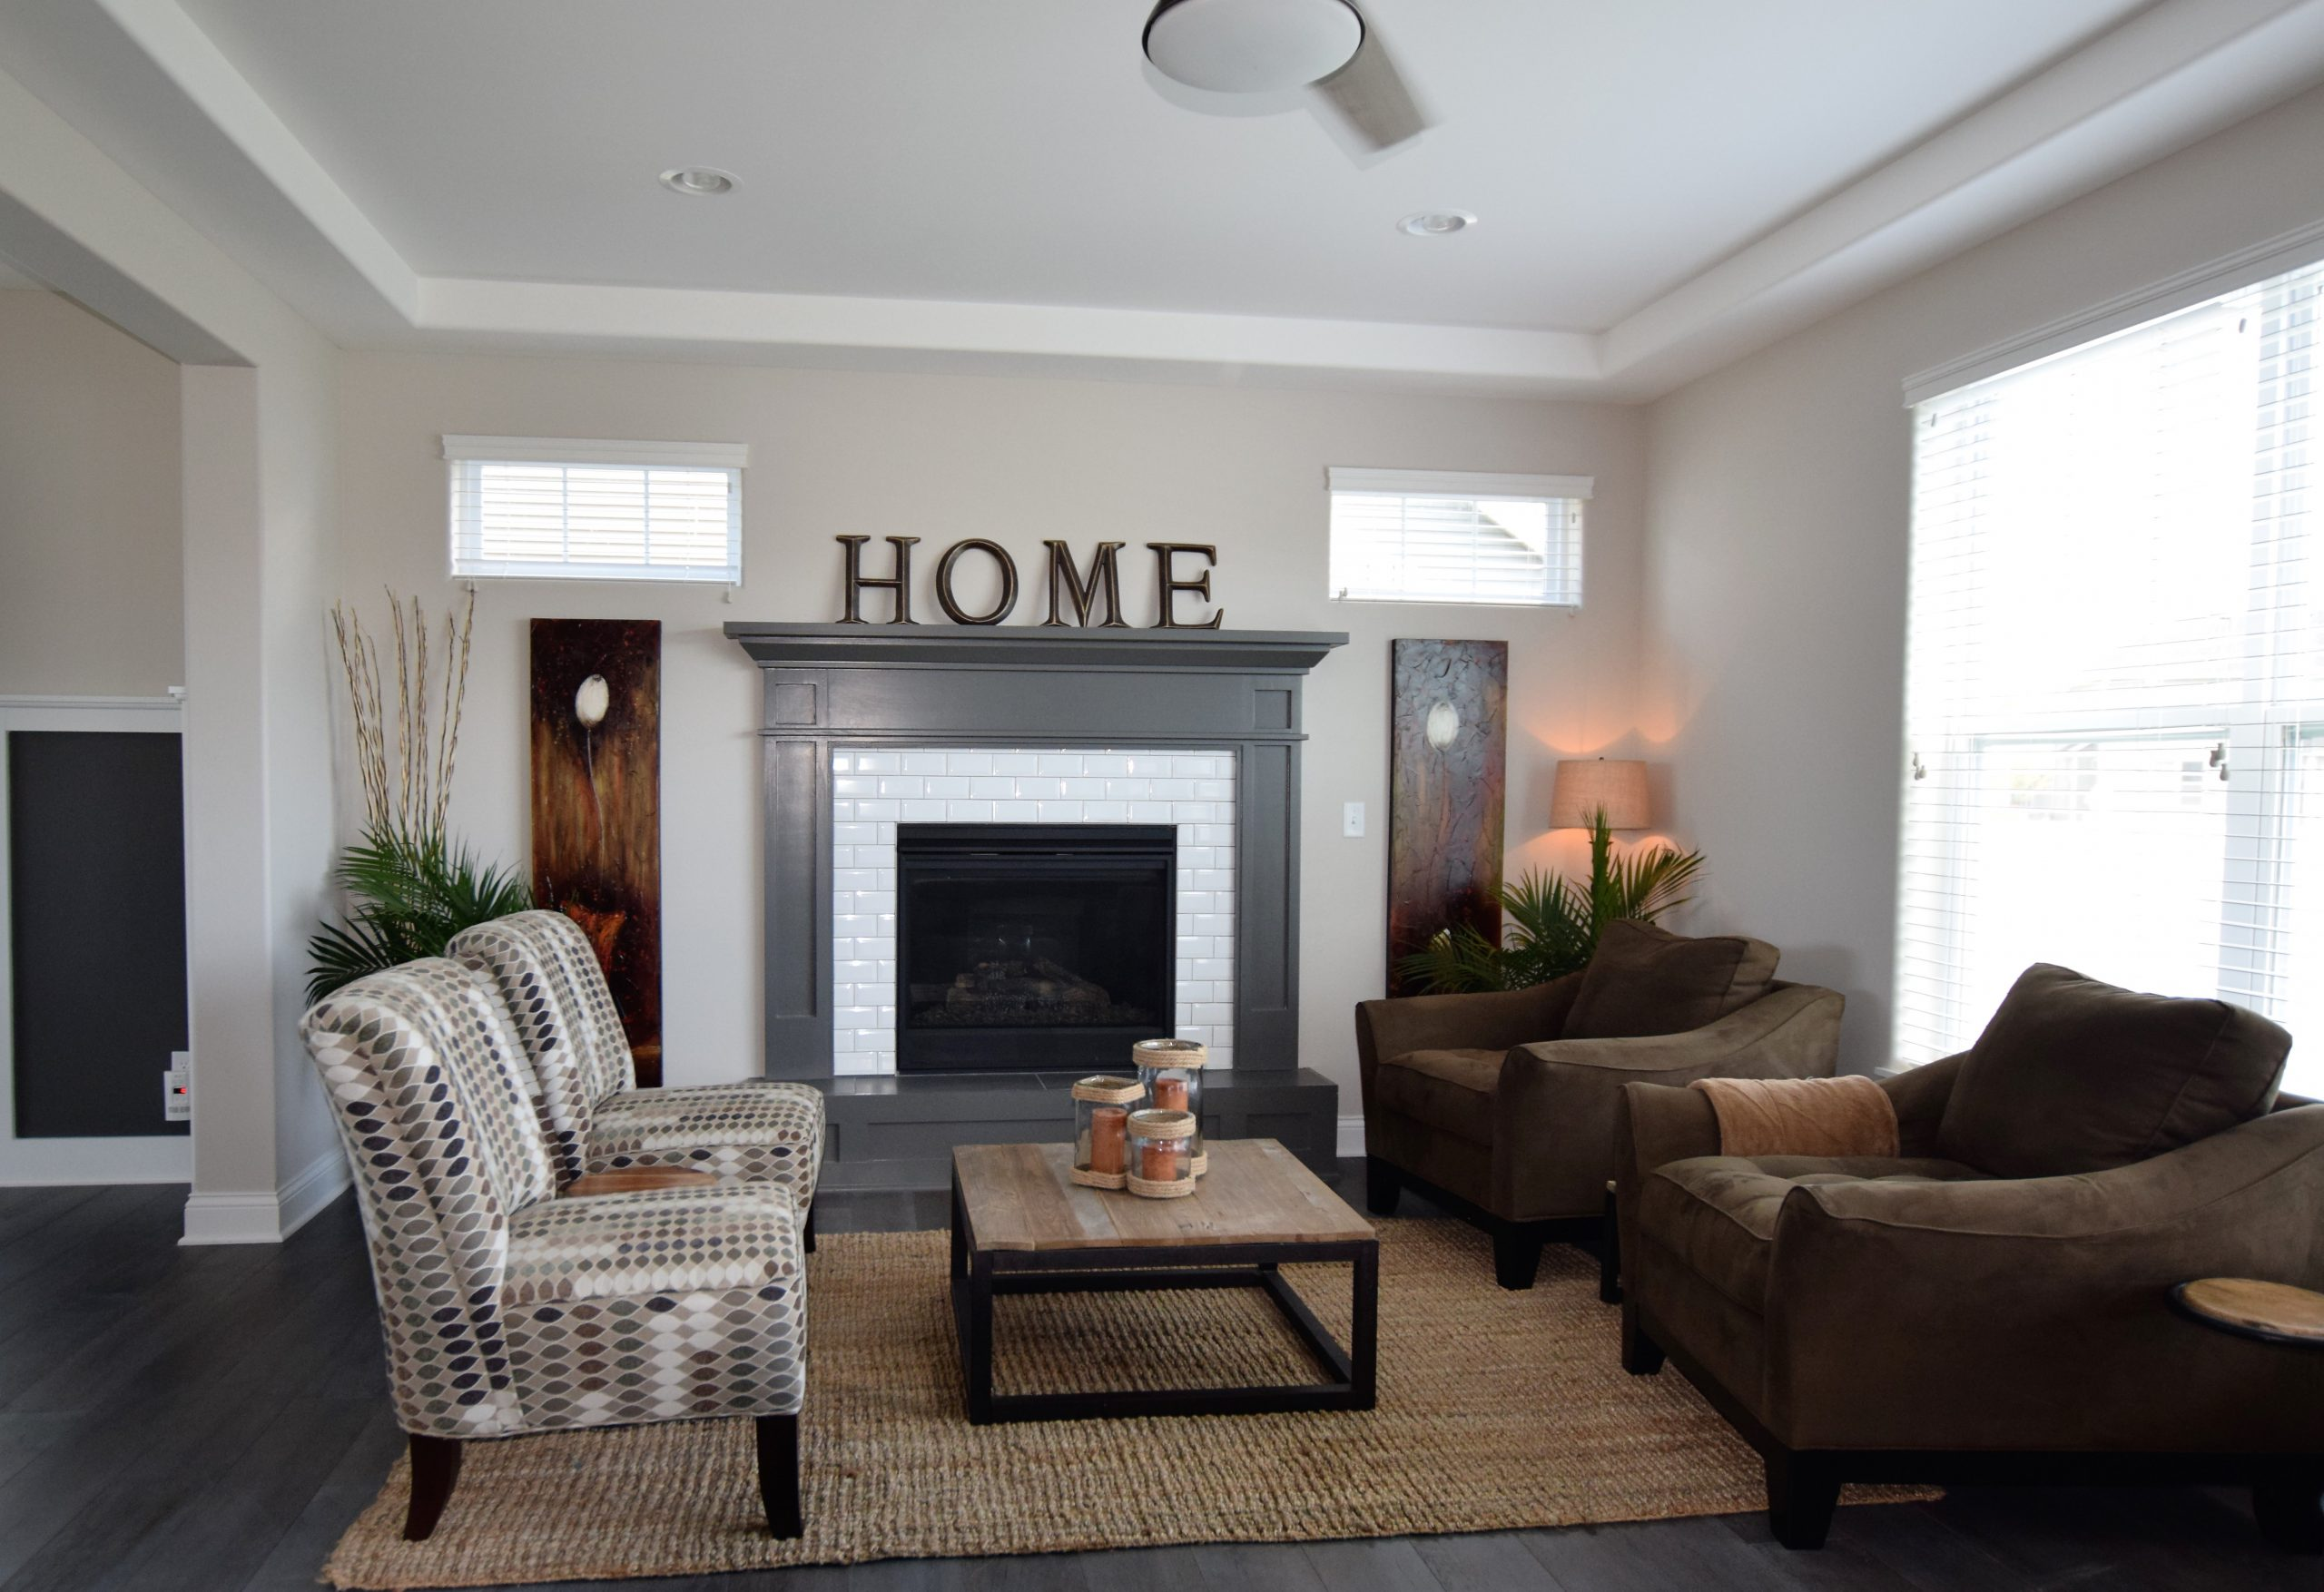 Fireplace with gray mantel and white tile surround